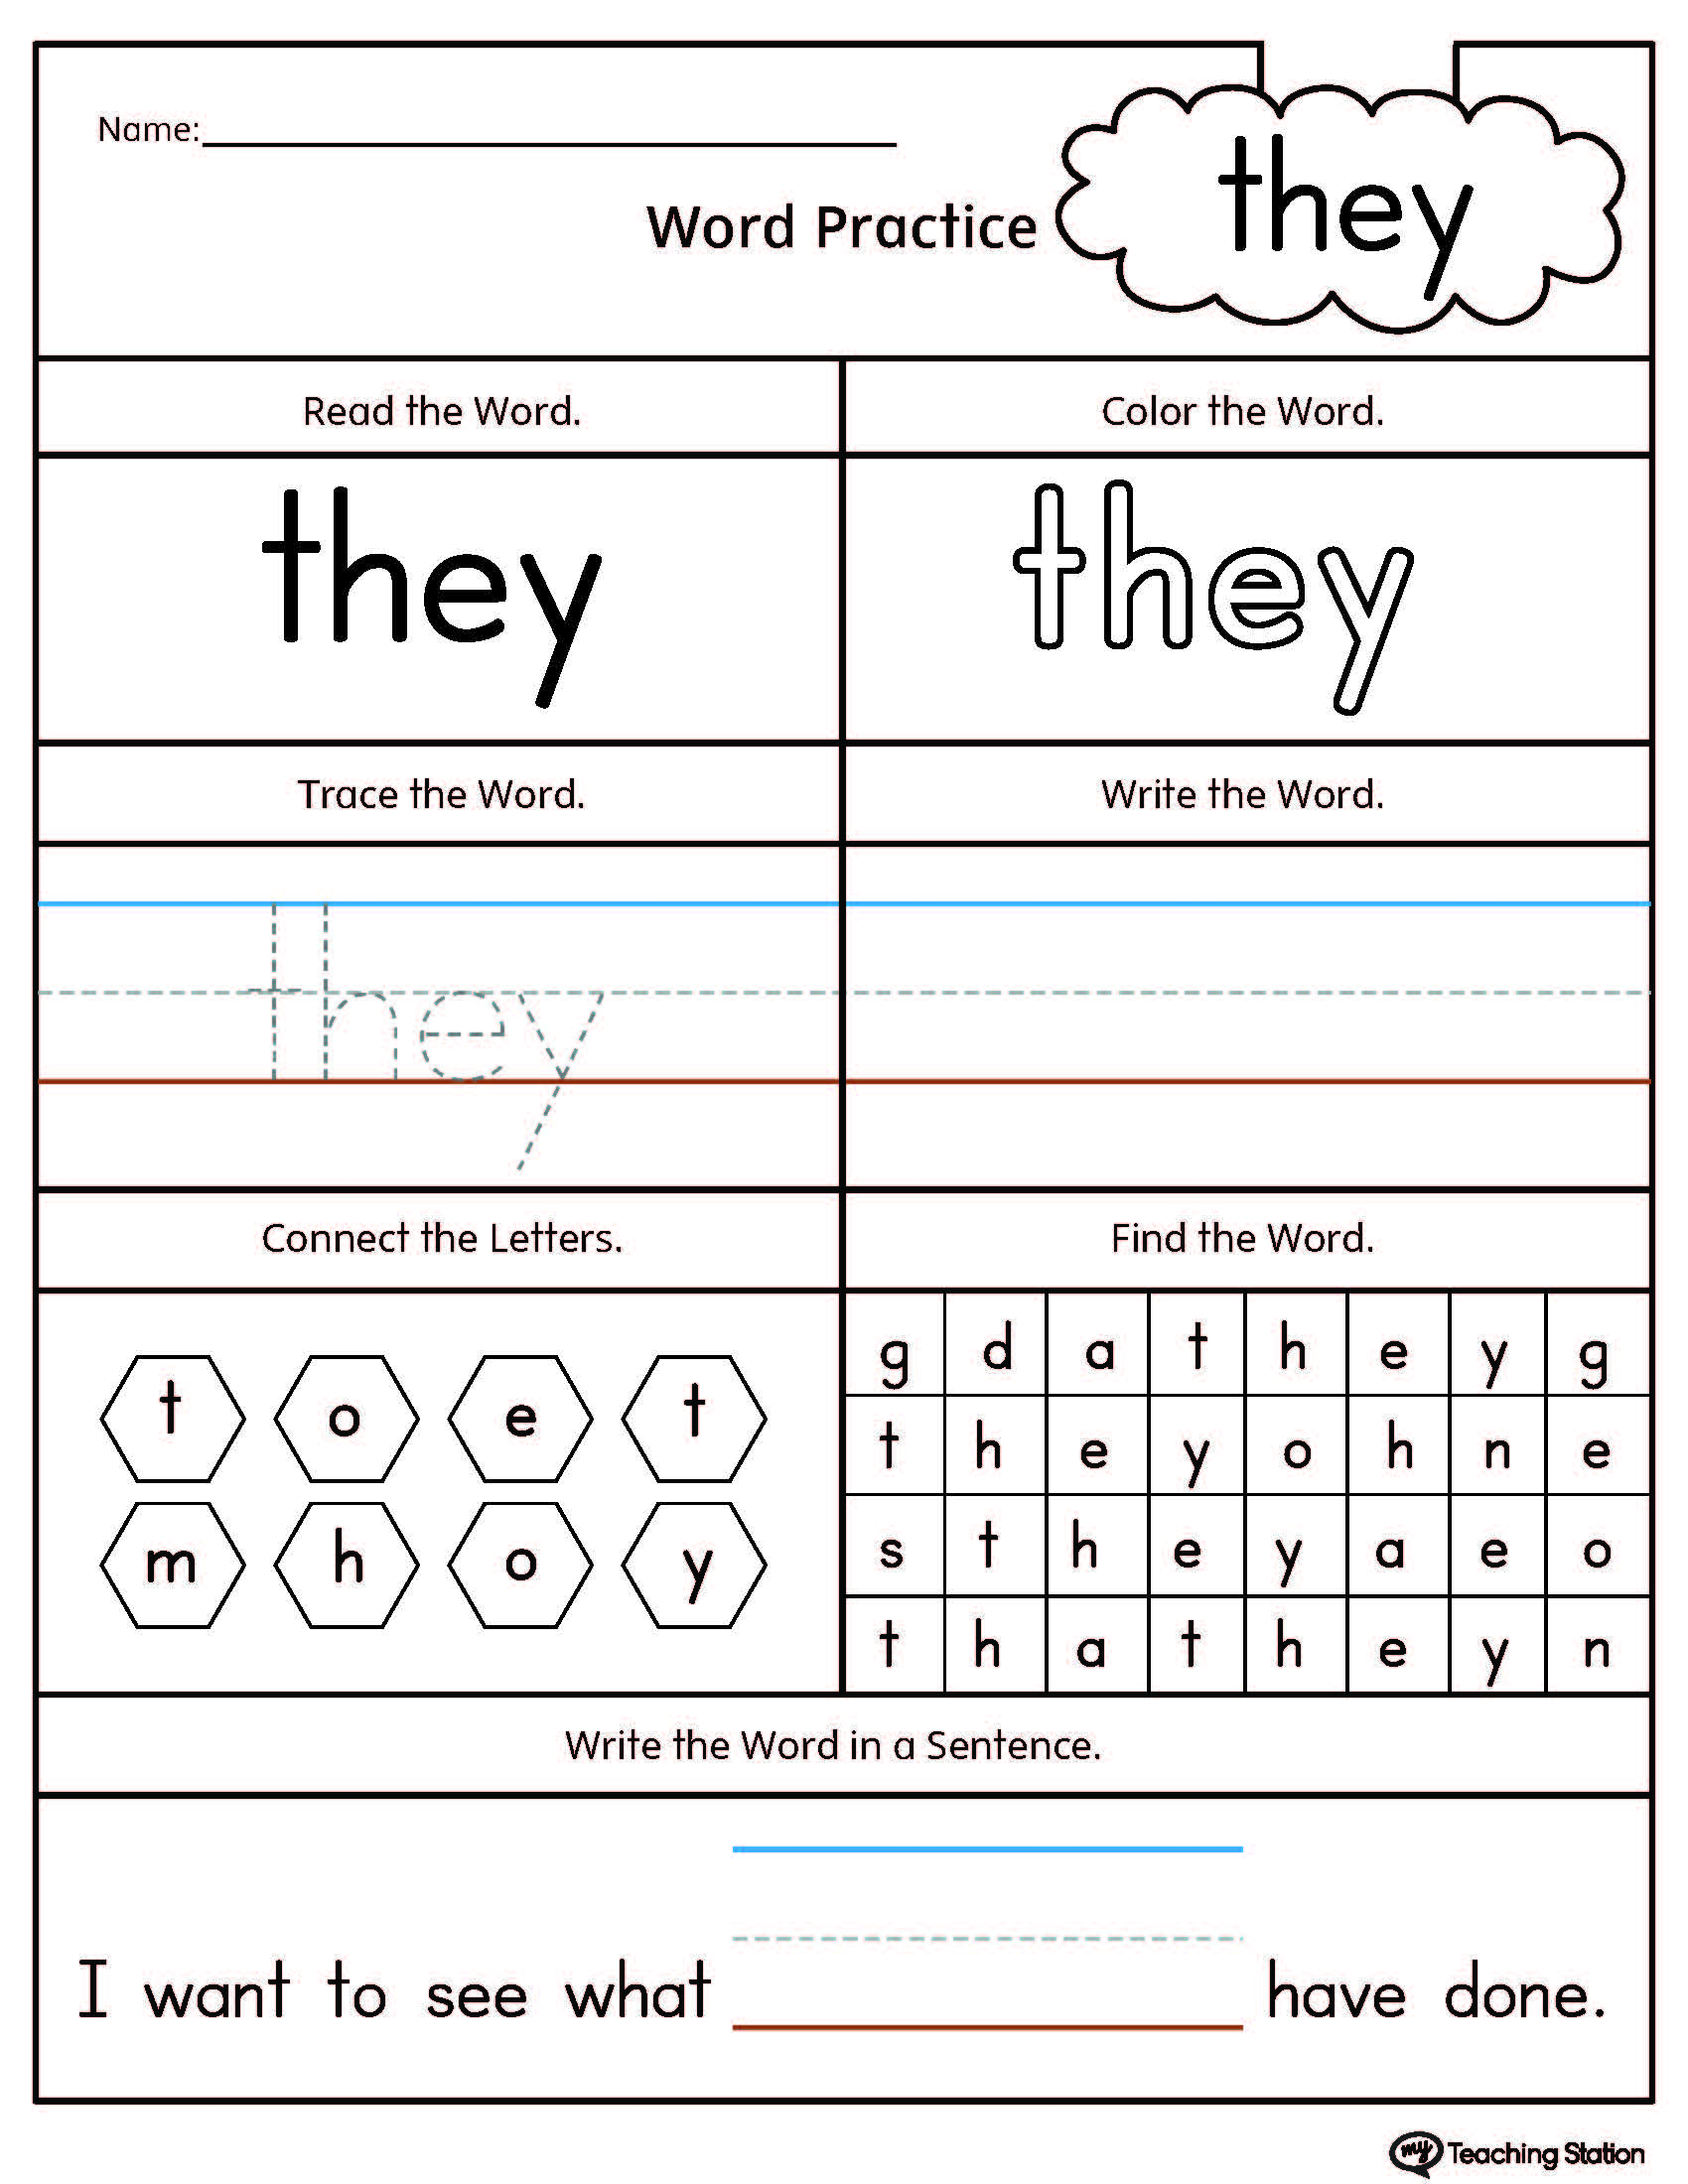 Worksheet Free Sight Words Printables high frequency words printable worksheets myteachingstation com word they worksheet